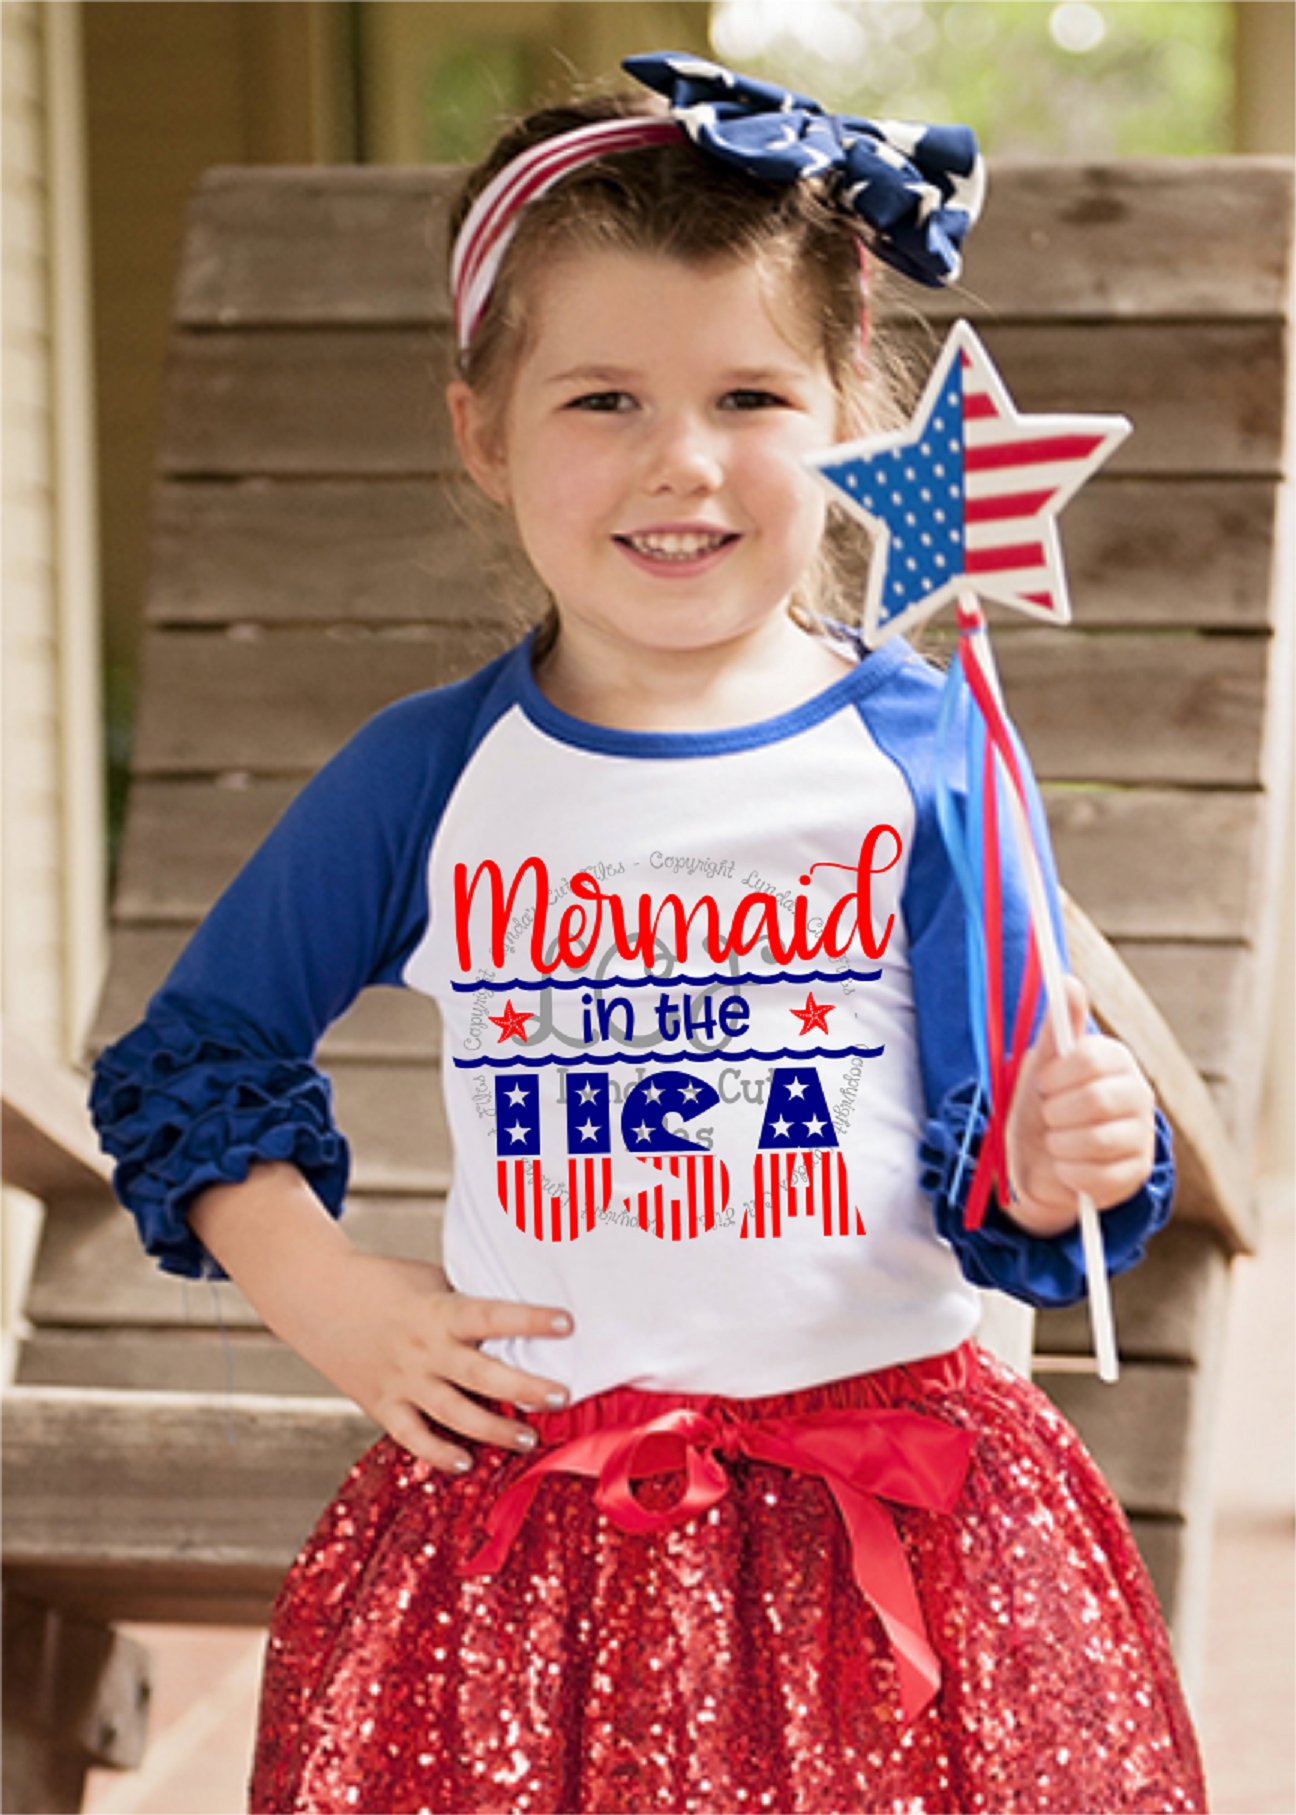 Mermaid in the USA//Summer//SVG//DXF//EPS example image 2